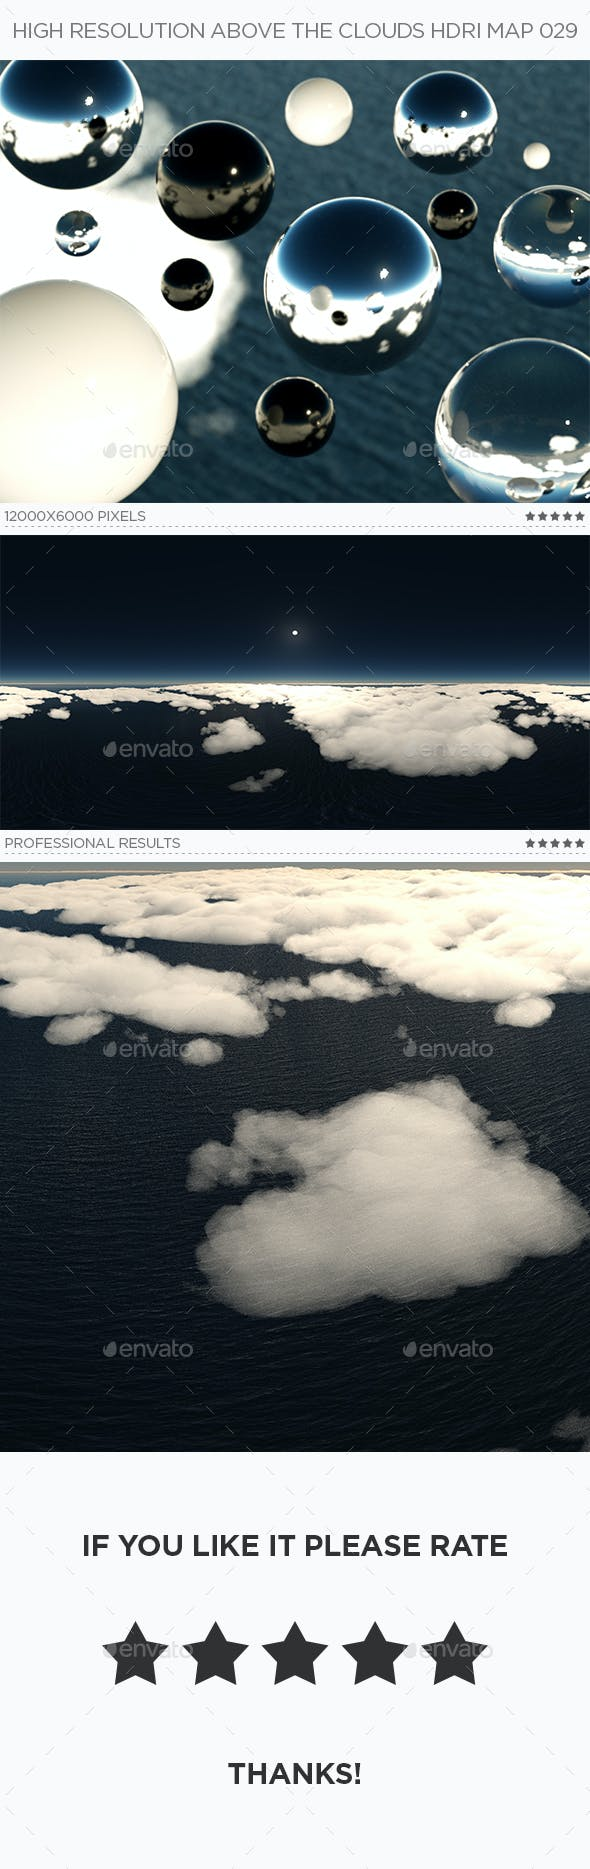 High Resolution Above The Clouds HDRi Map 029 - 3DOcean Item for Sale